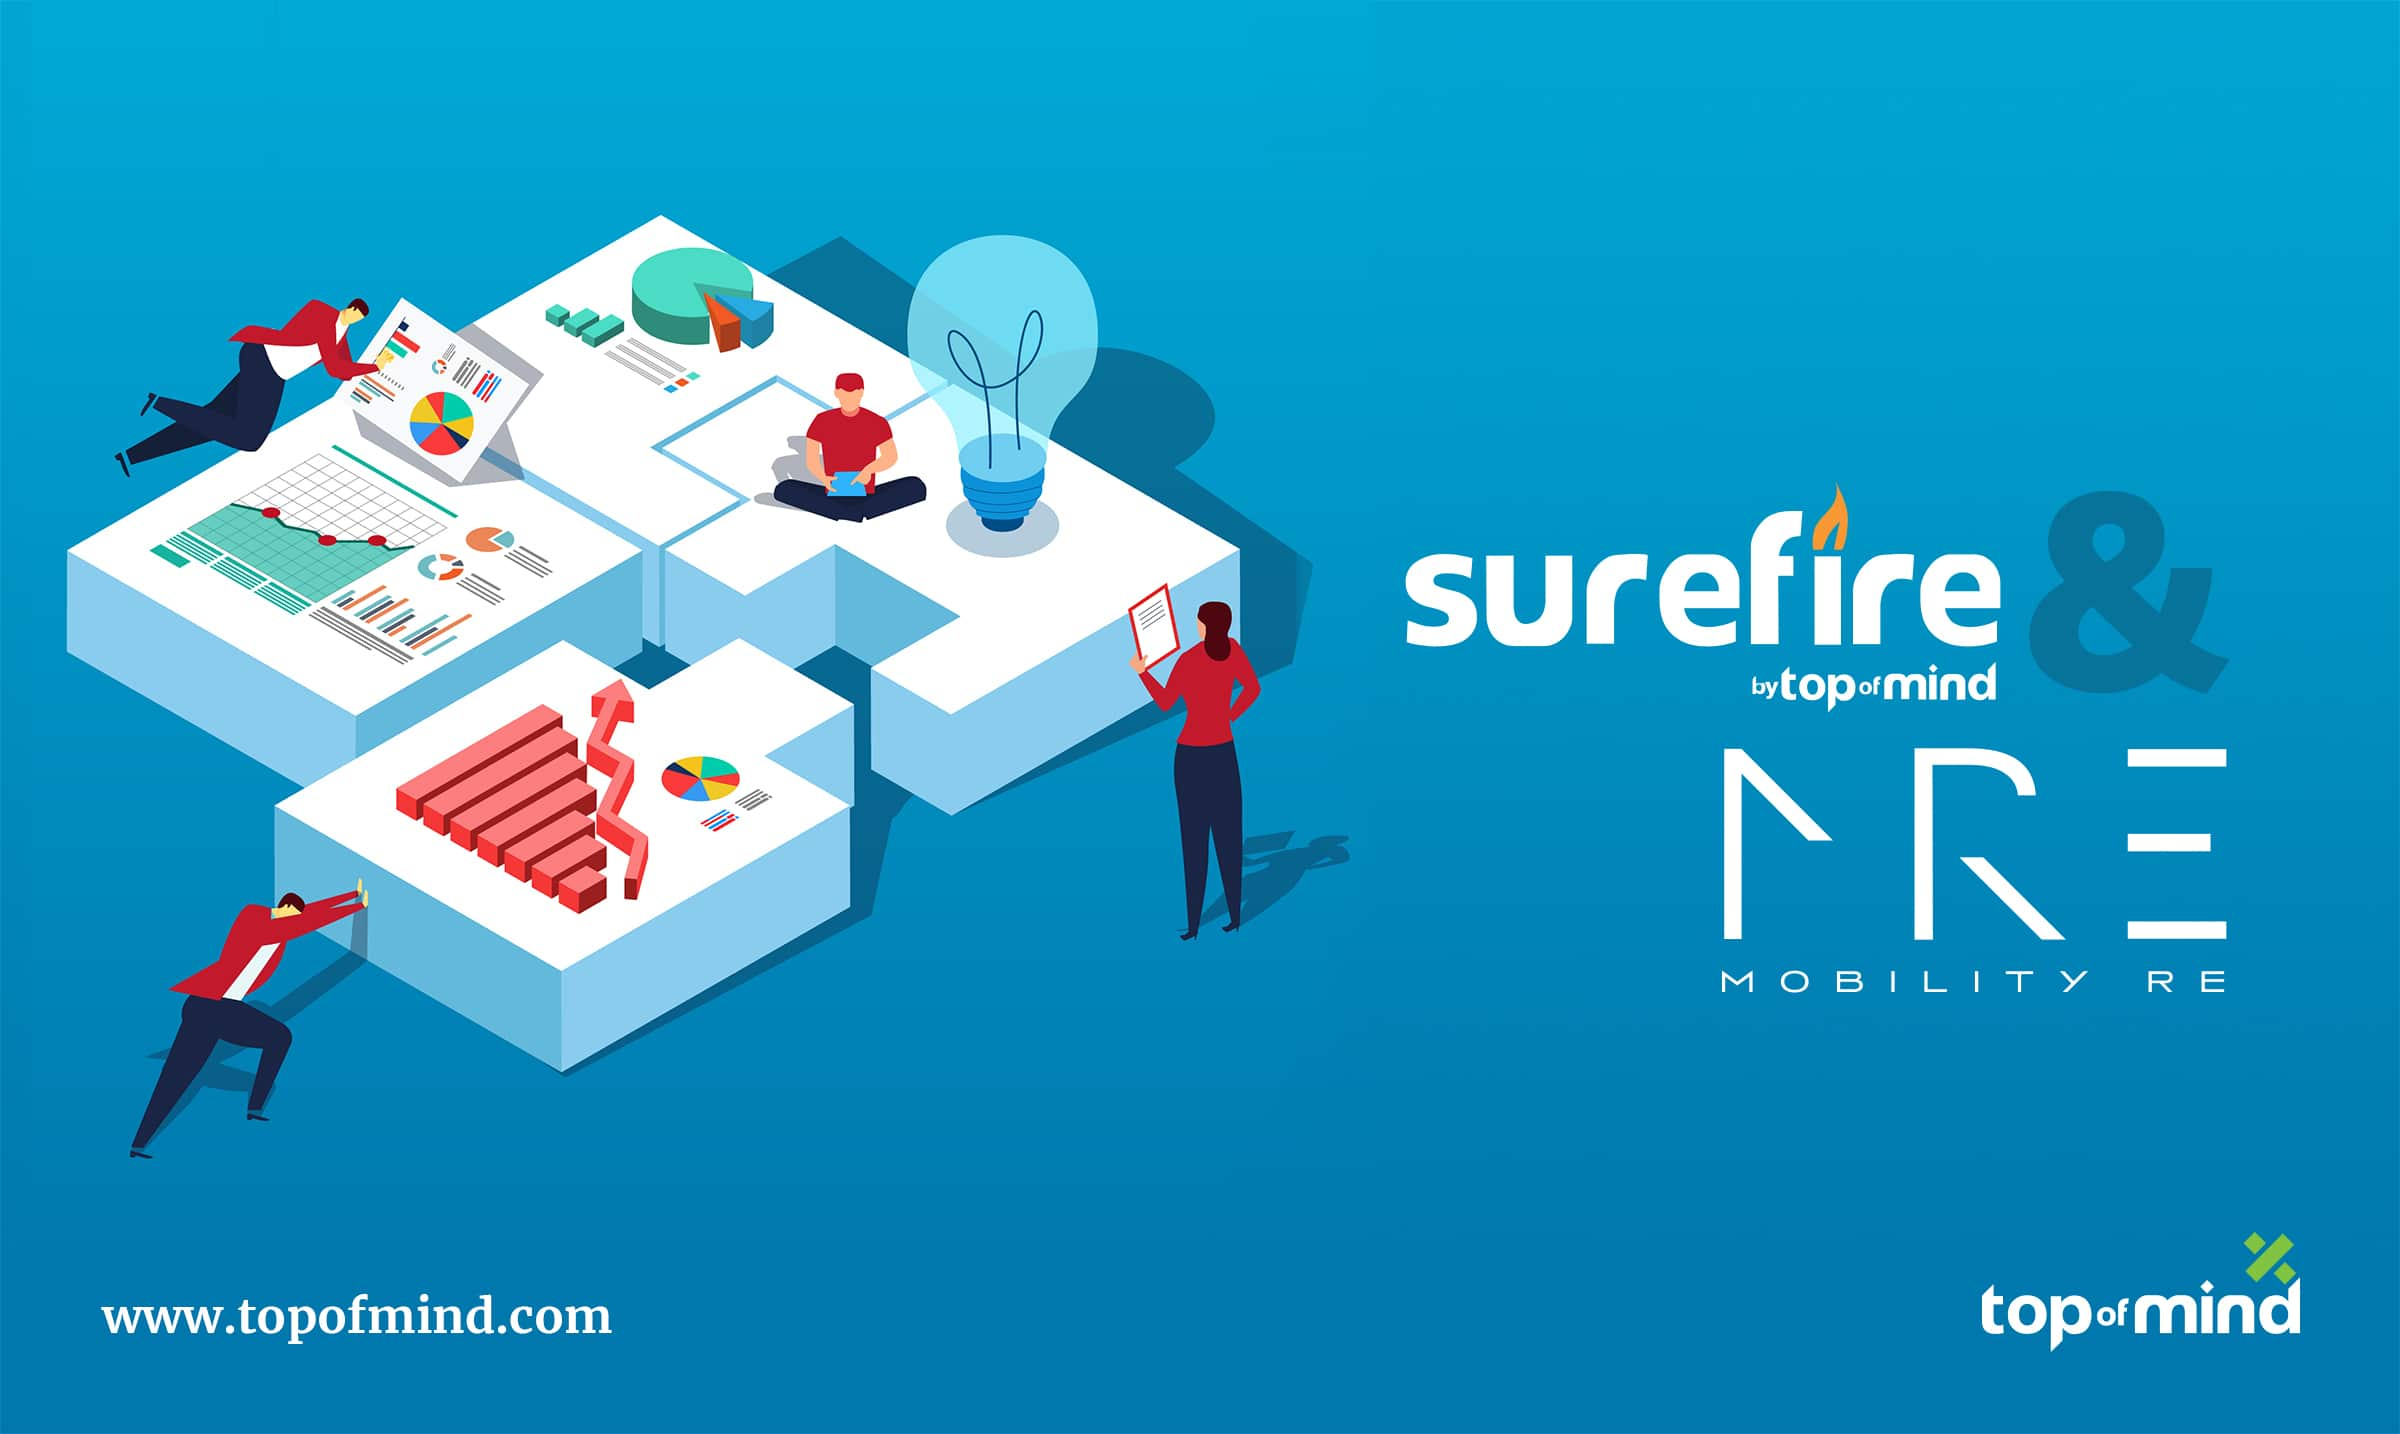 Surefire-and-MobilityRE-Fuel-Mortgage-Loan-Officer-and-Real-Estate-Agent-Collaboration